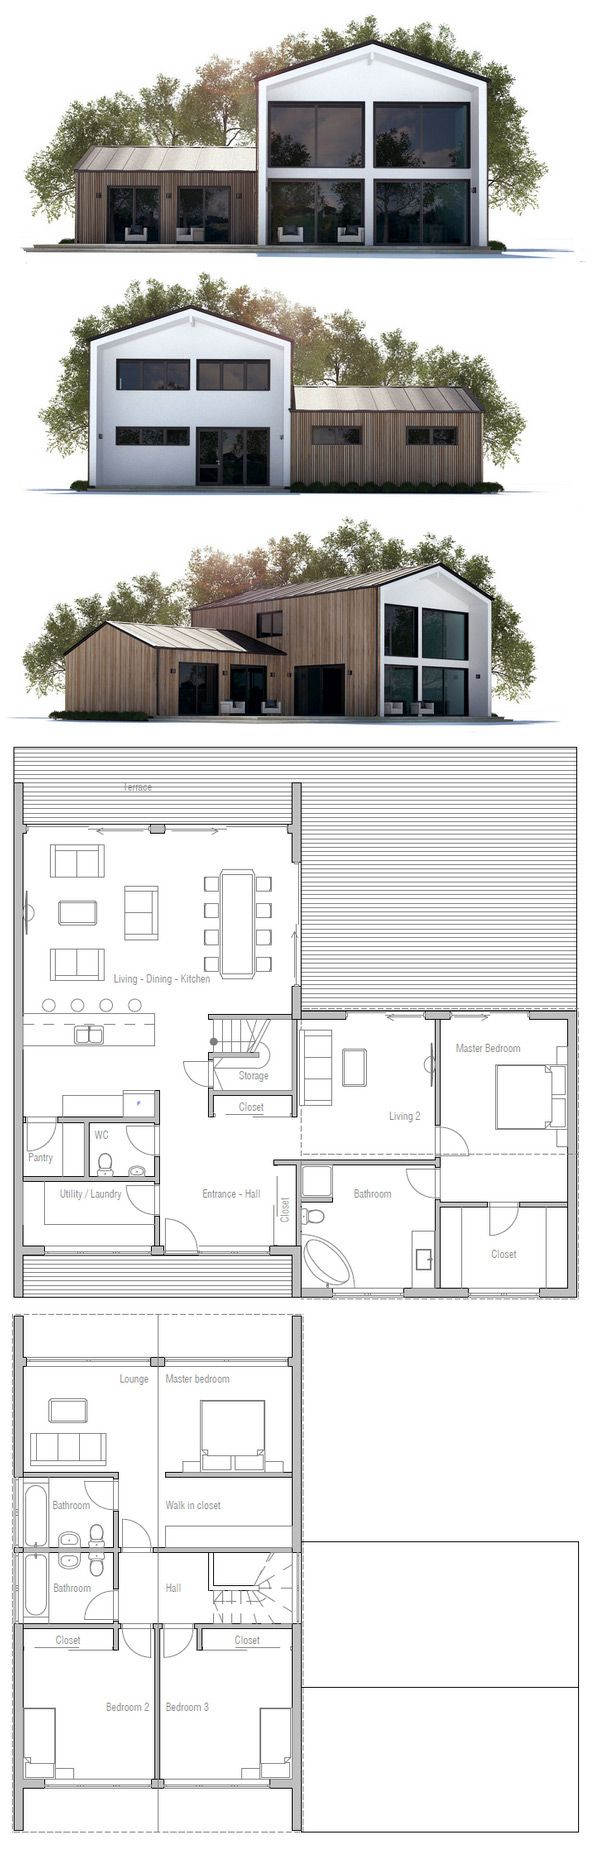 Container House - plan de petite maison Plus - Who Else Wants Simple Step-By-Step Plans To Design And Build A Container Home From Scratch?